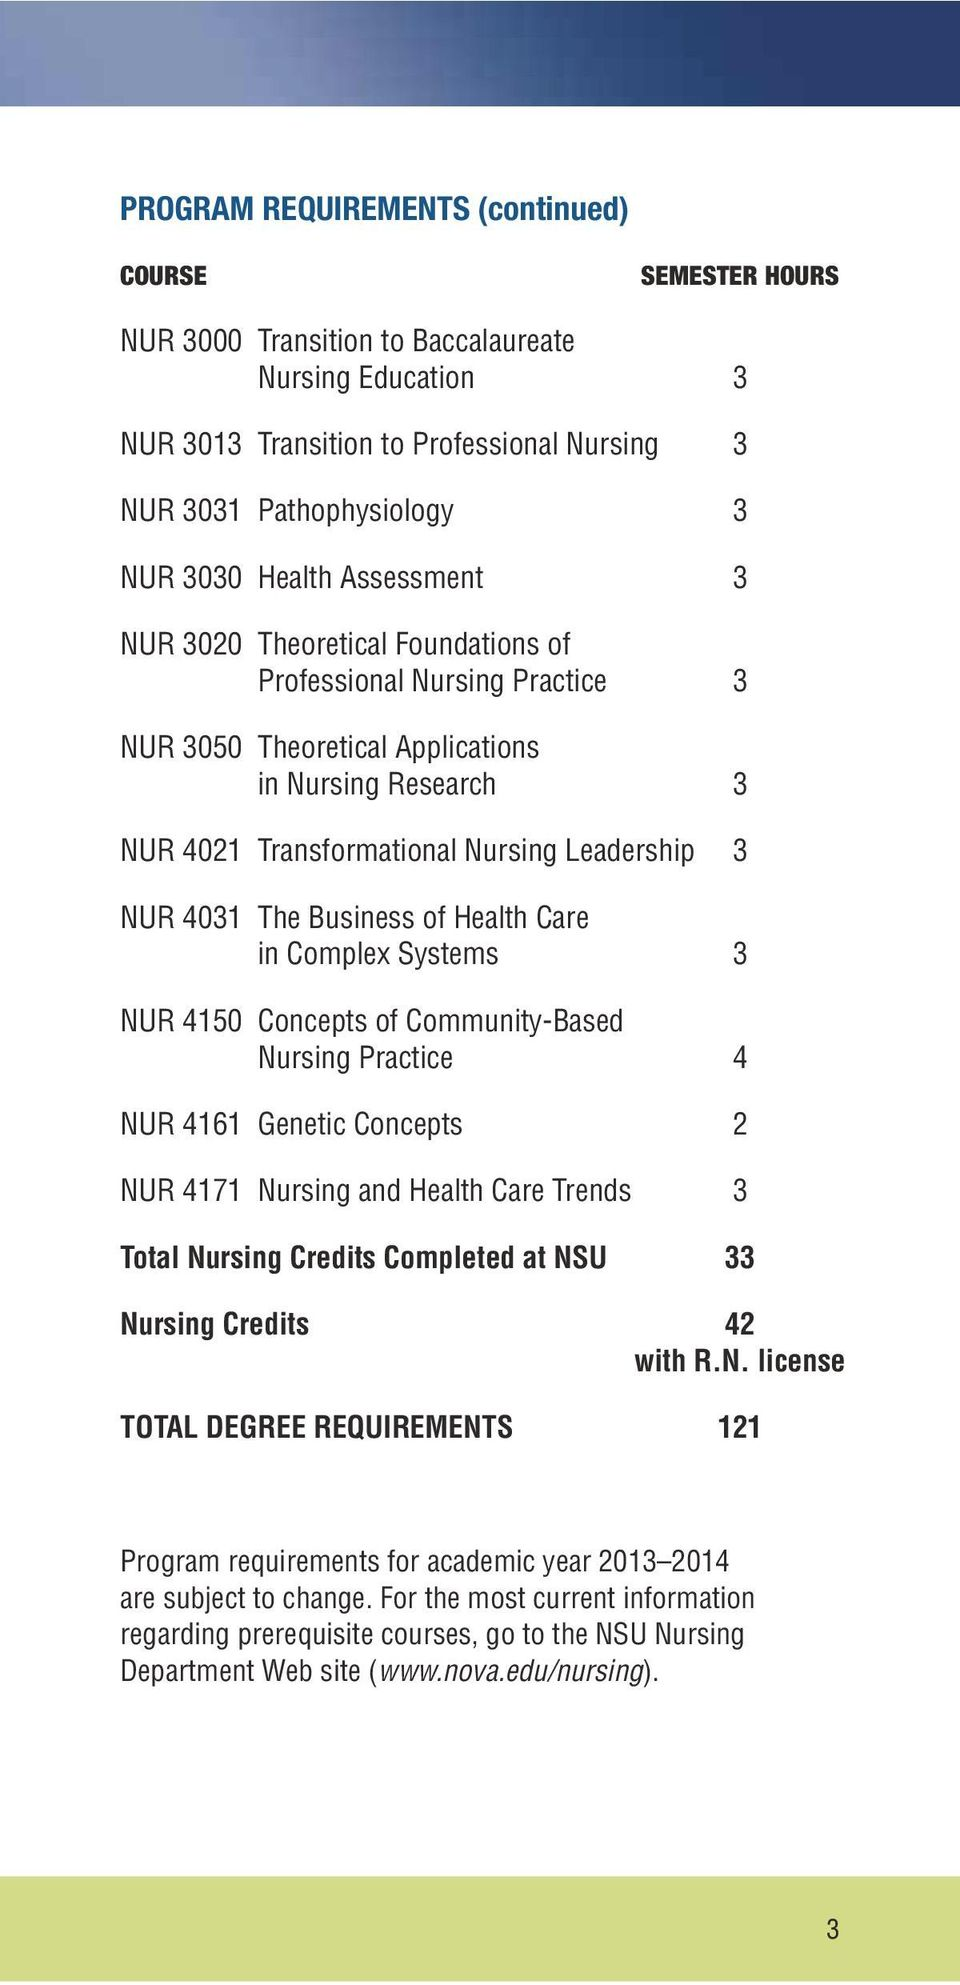 The Business of Health Care in Complex Systems 3 NUR 4150 Concepts of Community-Based Nursing Practice 4 NUR 4161 Genetic Concepts 2 NUR 4171 Nursing and Health Care Trends 3 Total Nursing Credits